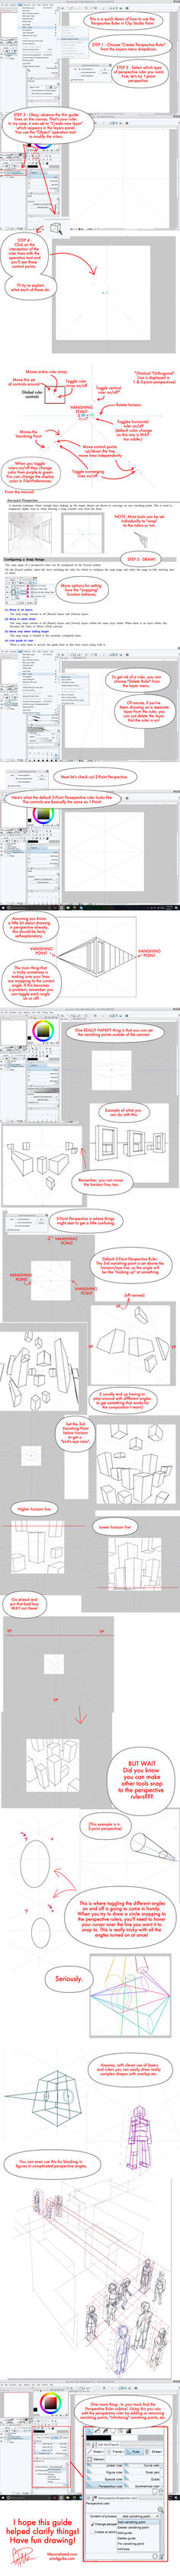 Clip Studio Paint Perspective Ruler Tutorial! by twapa